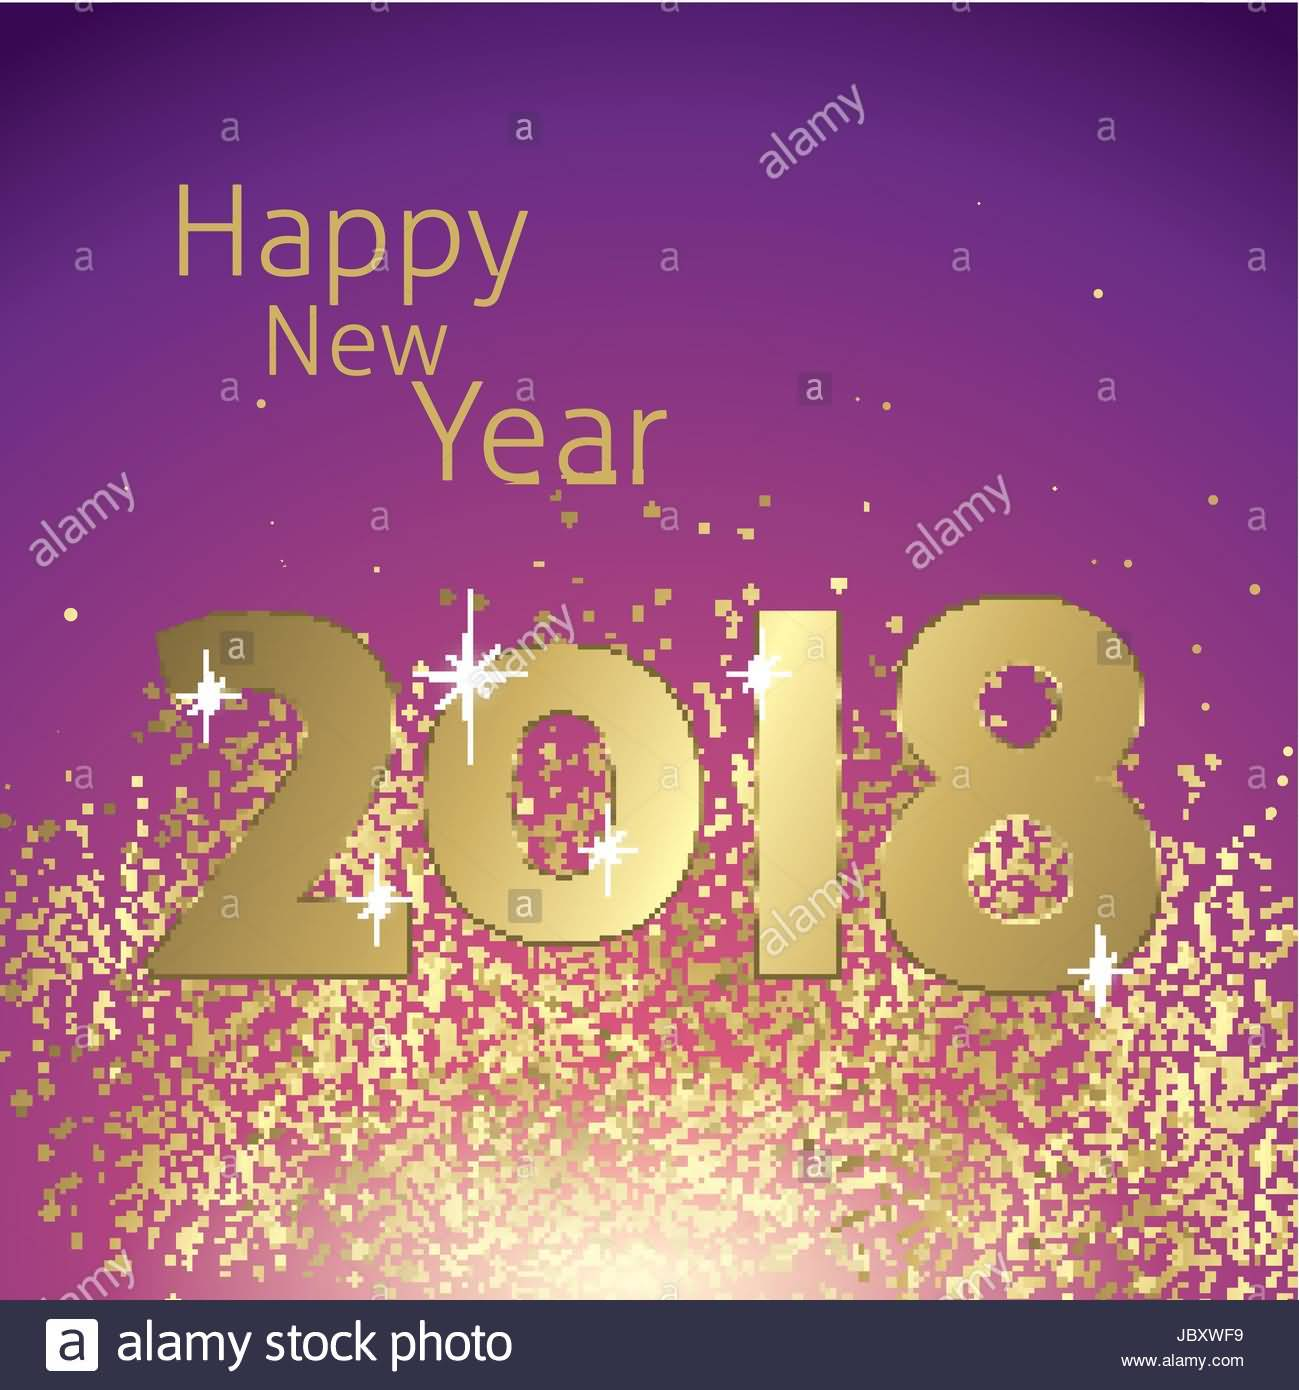 Happy New Year 2018 Cards Image Picture Photo Wallpaper 03